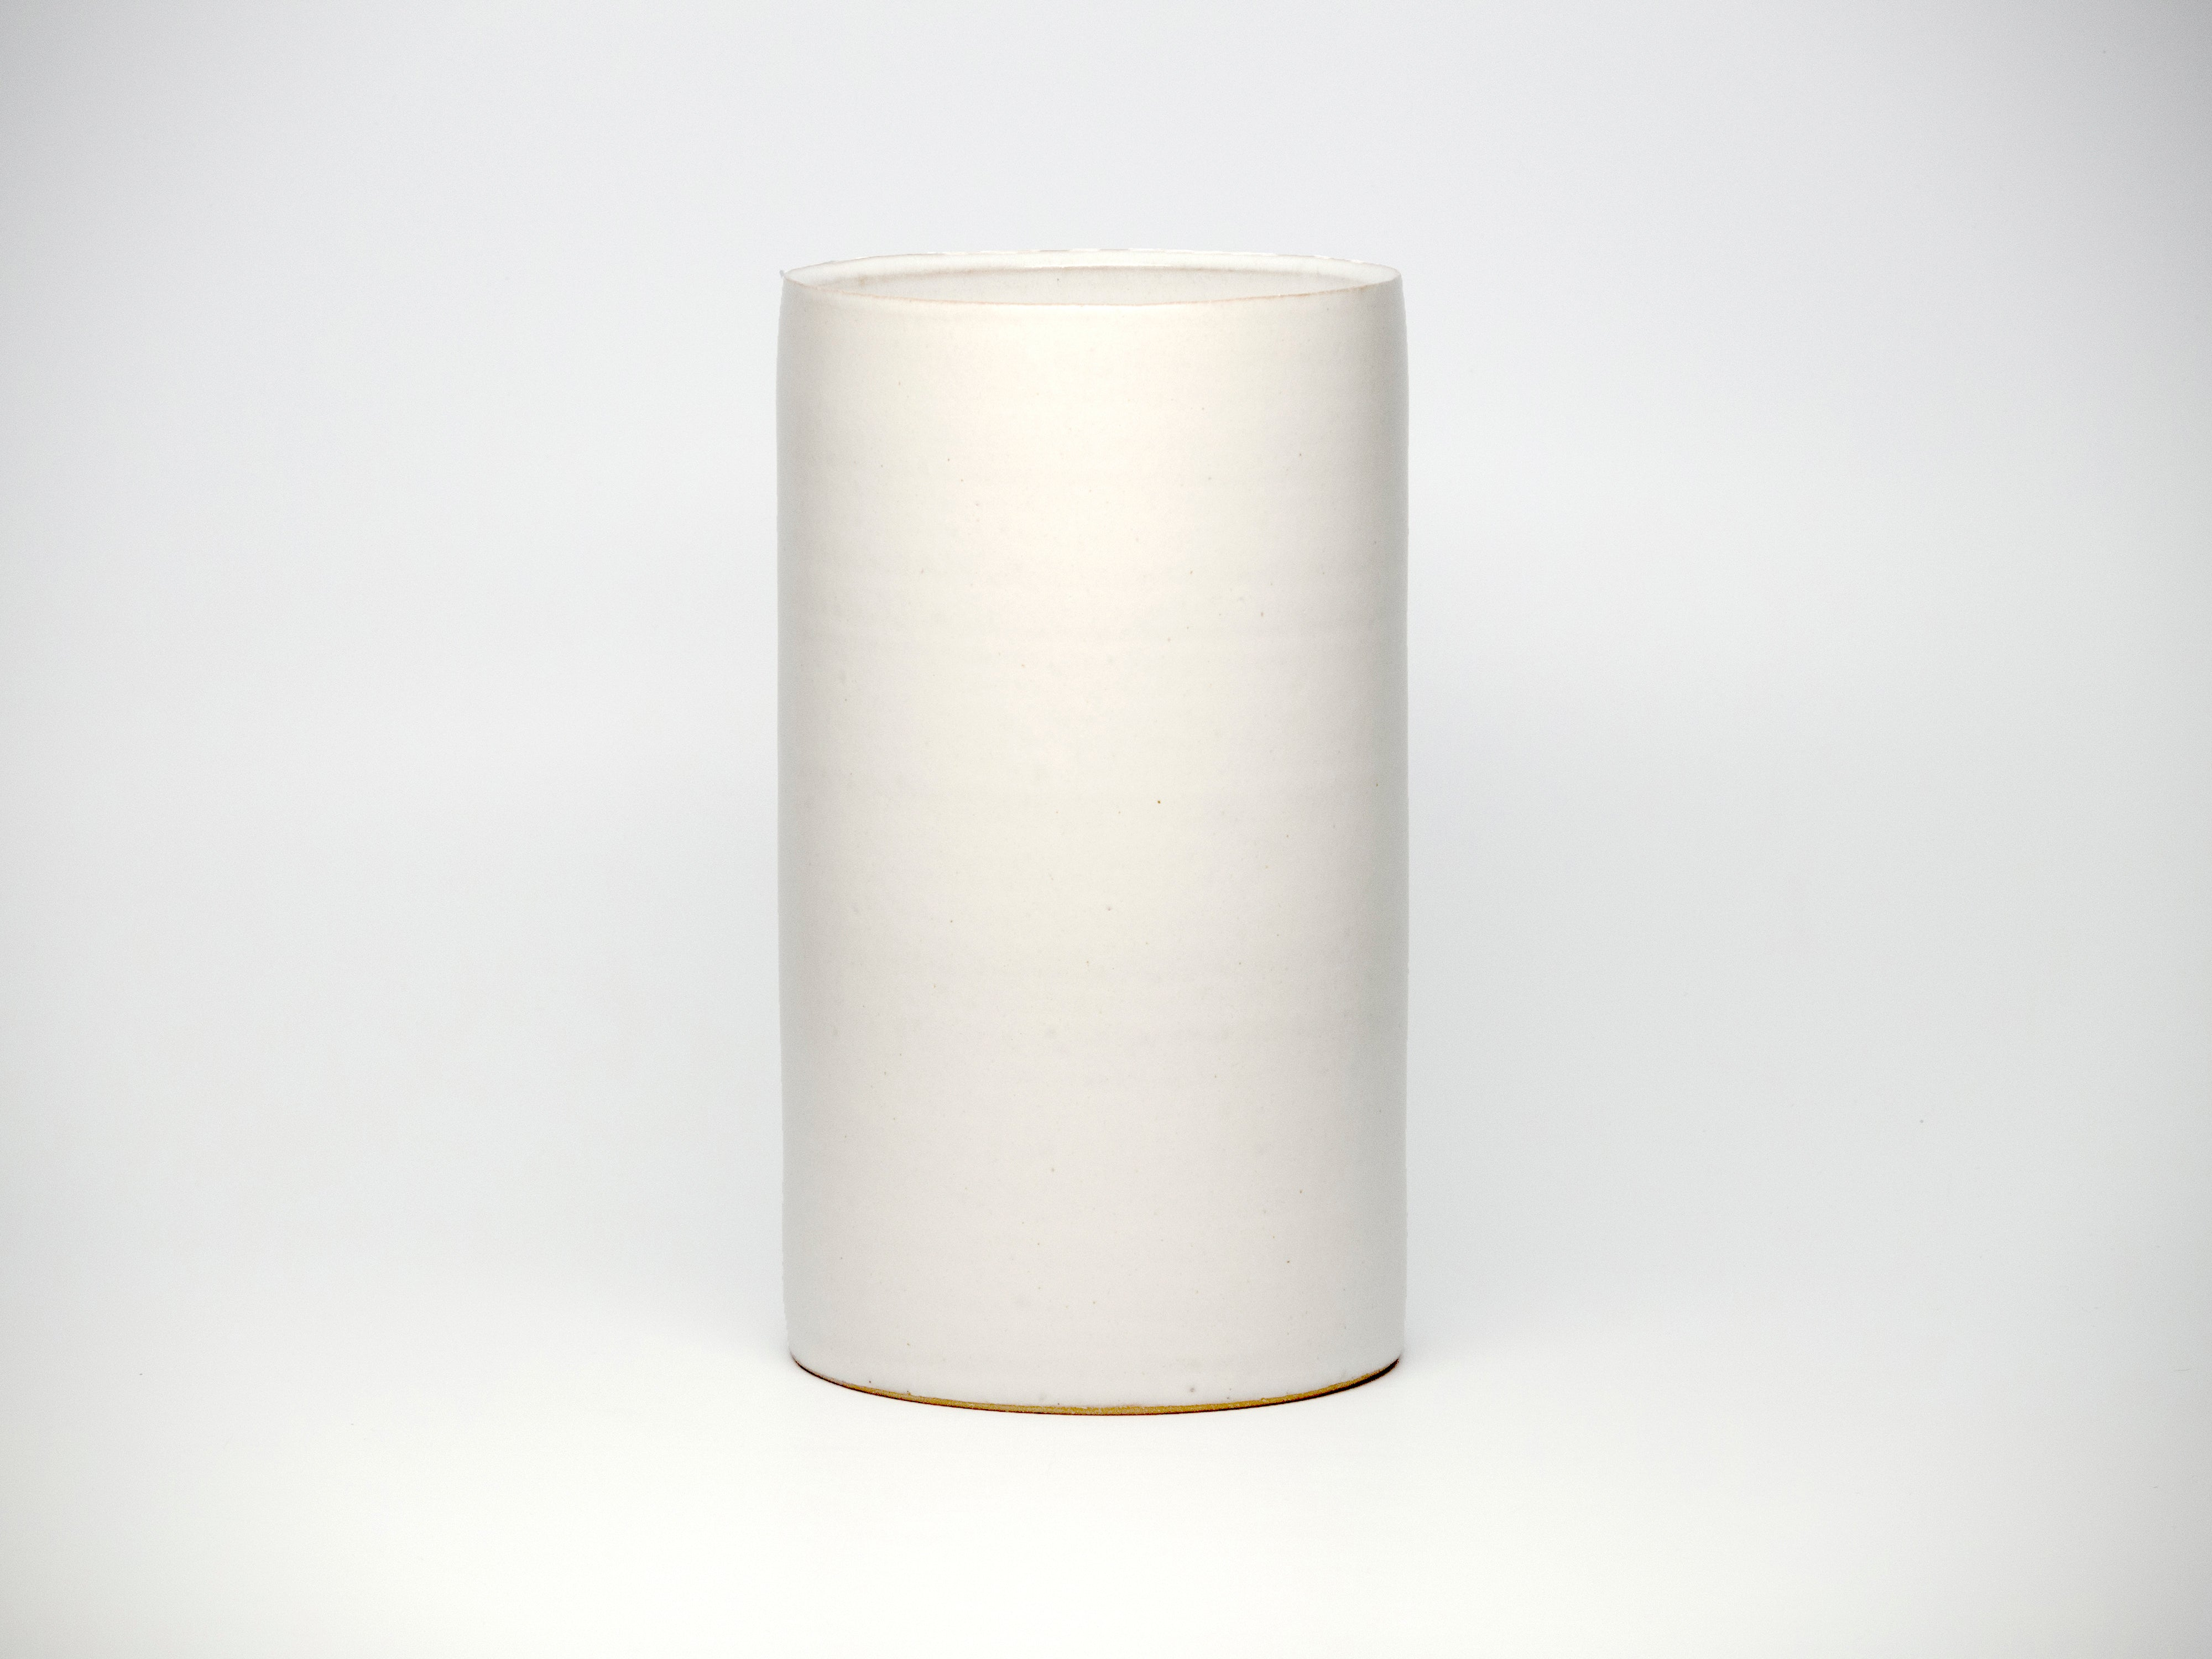 Tracie-Hervy-Wide-Cylinder-Small-White